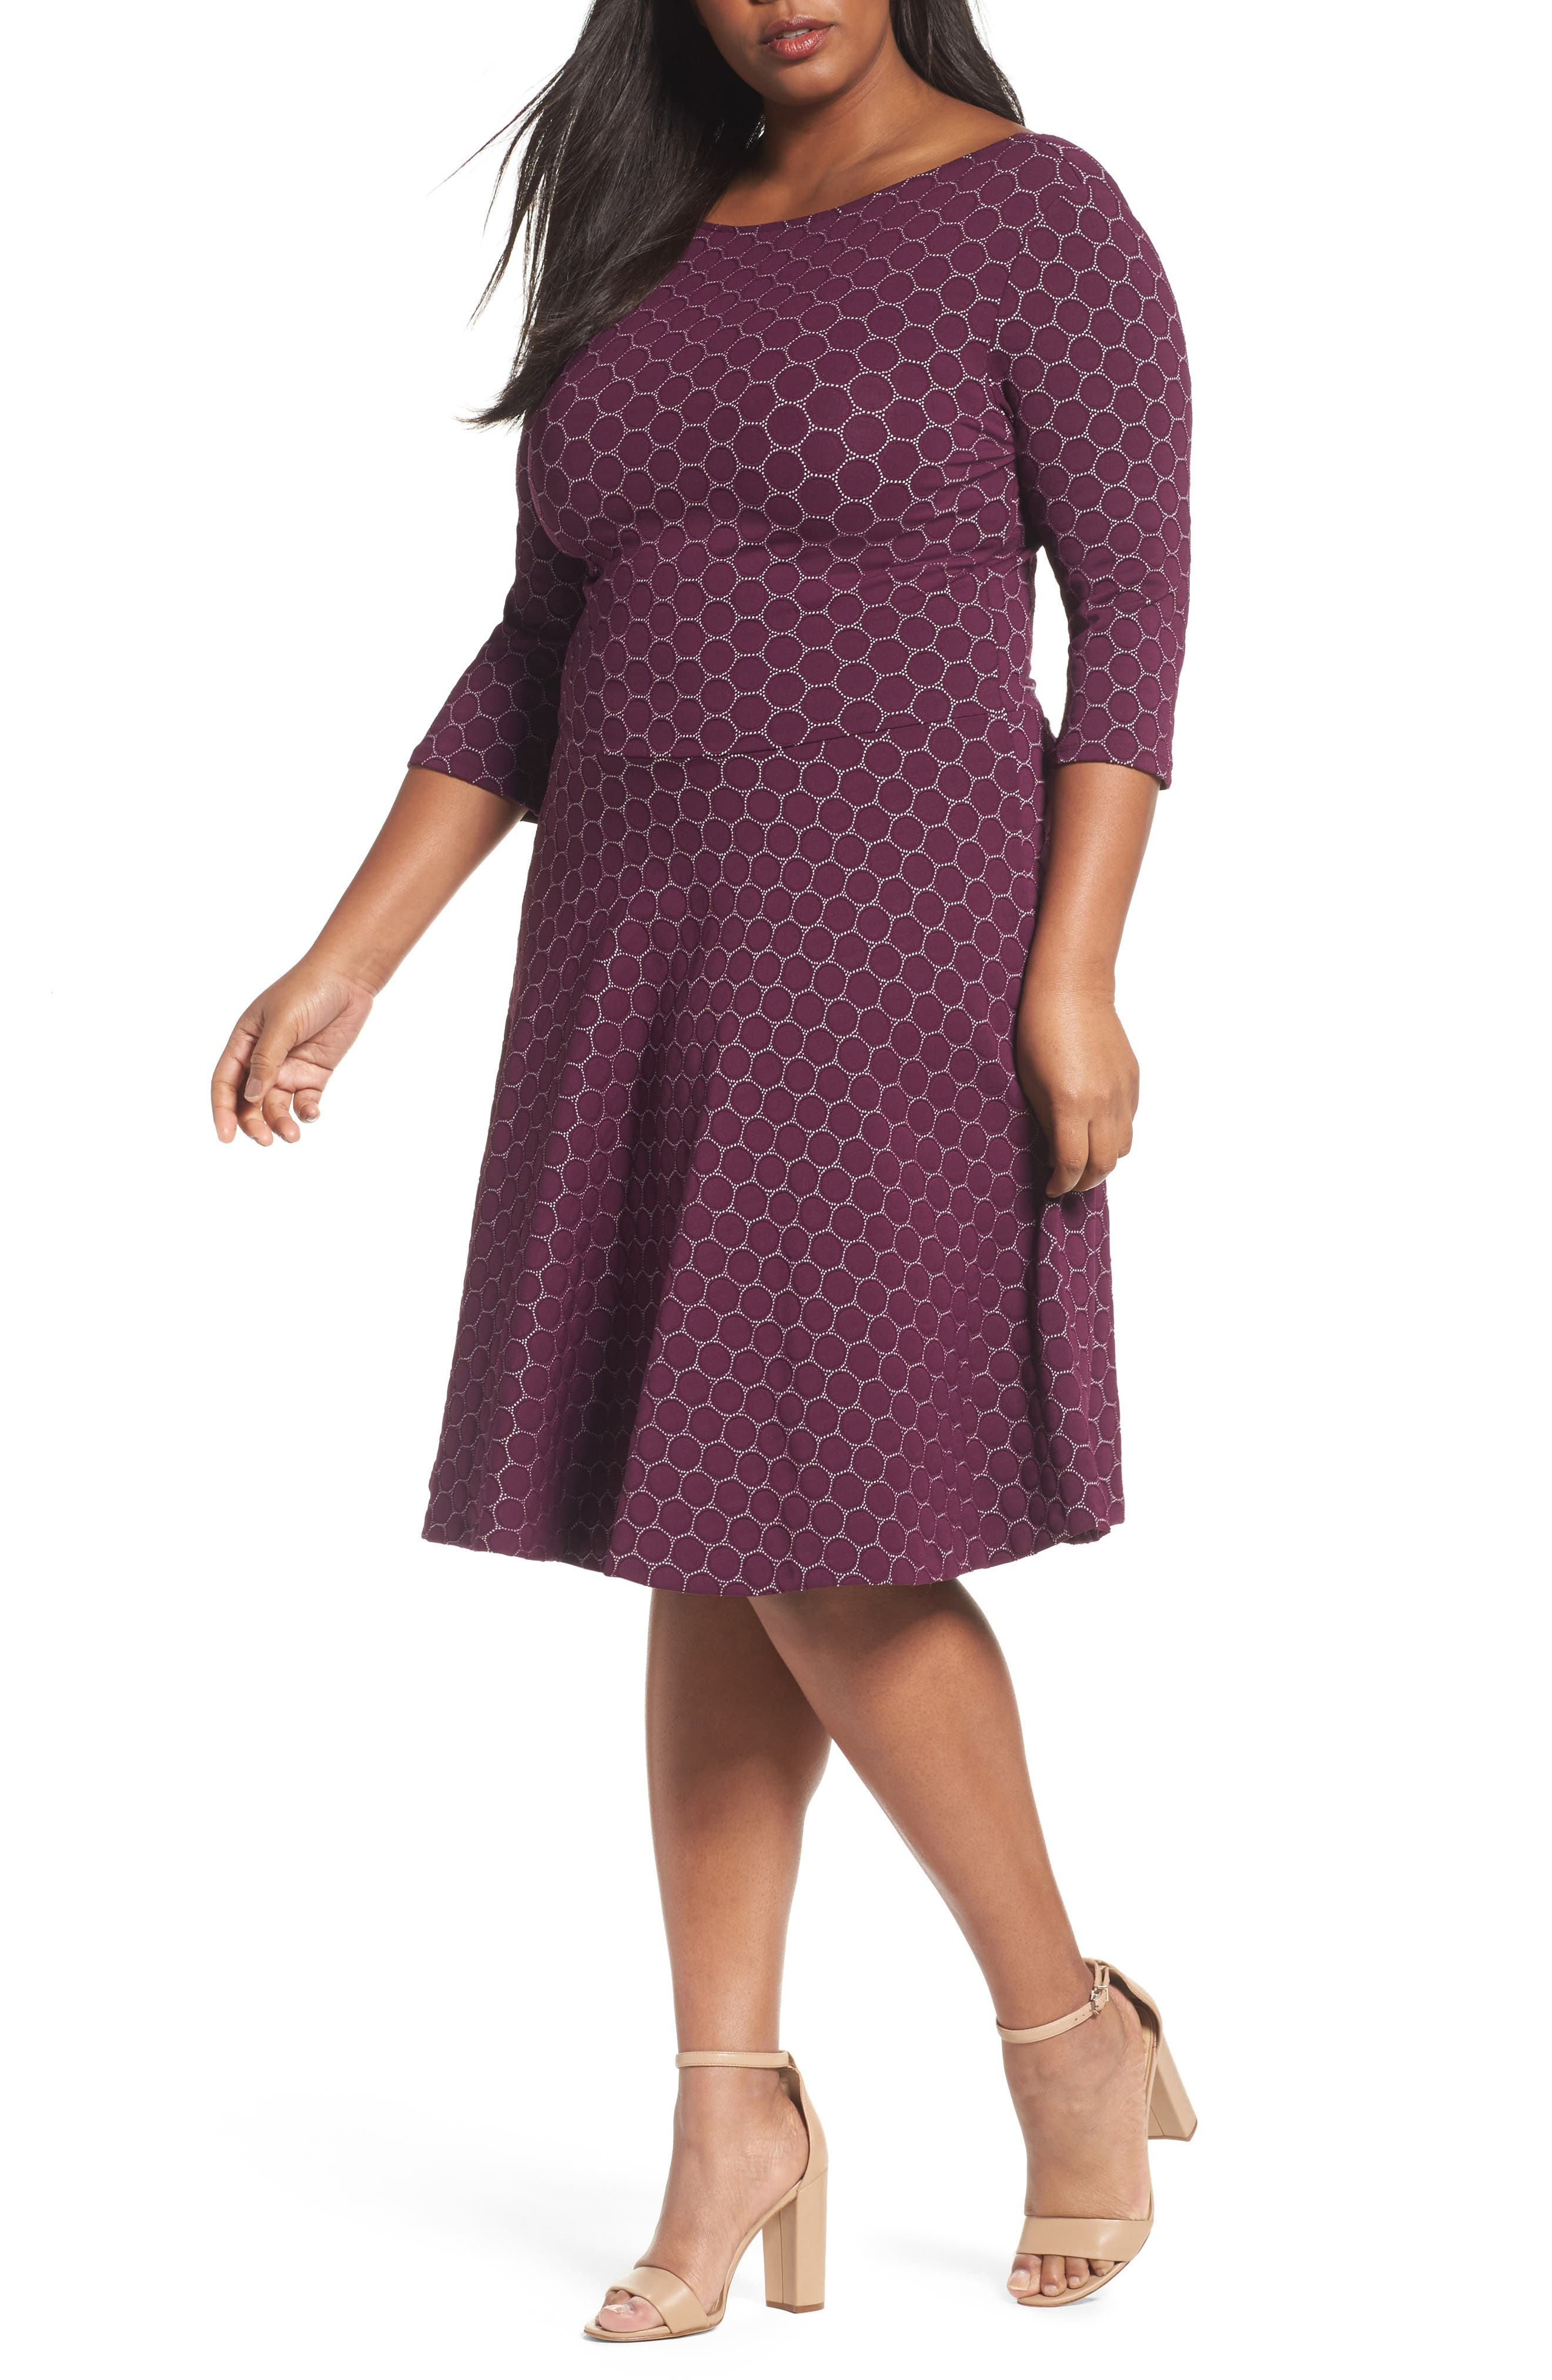 Main Image - Leota Circle Knit Fit & Flare Dress (Plus Size)